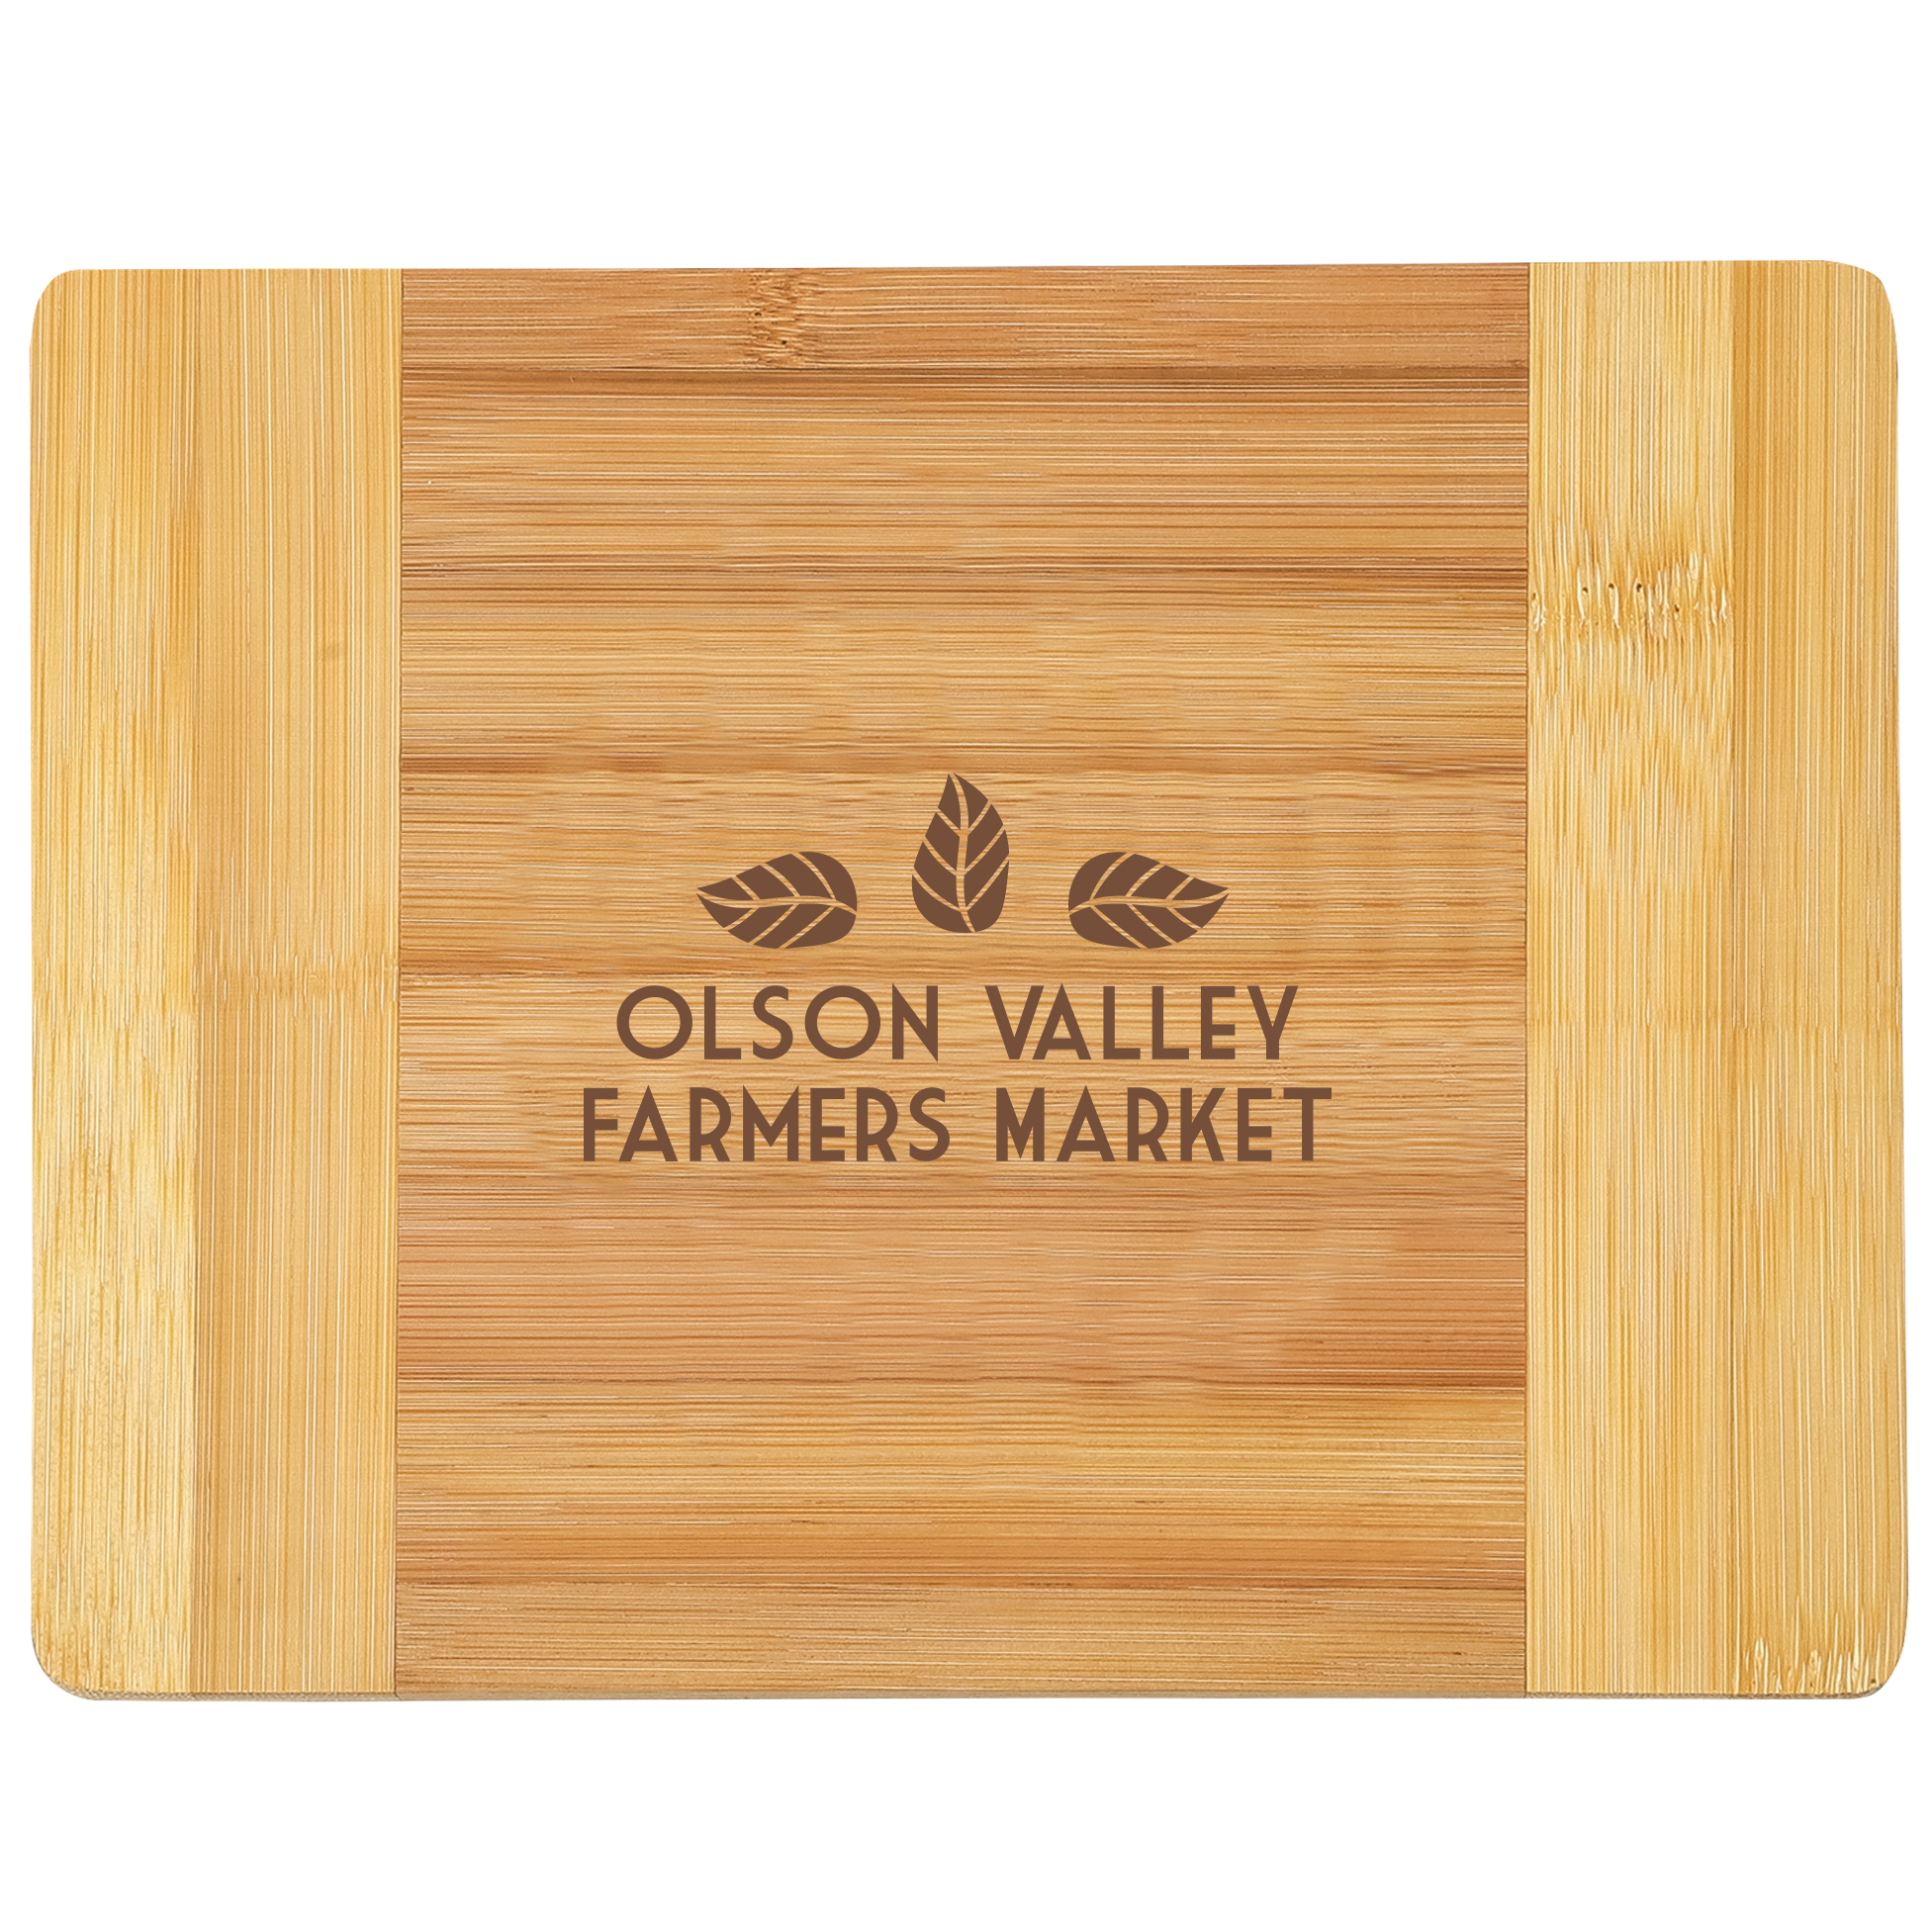 "Bamboo Cutting Board, 8"" x 6"""